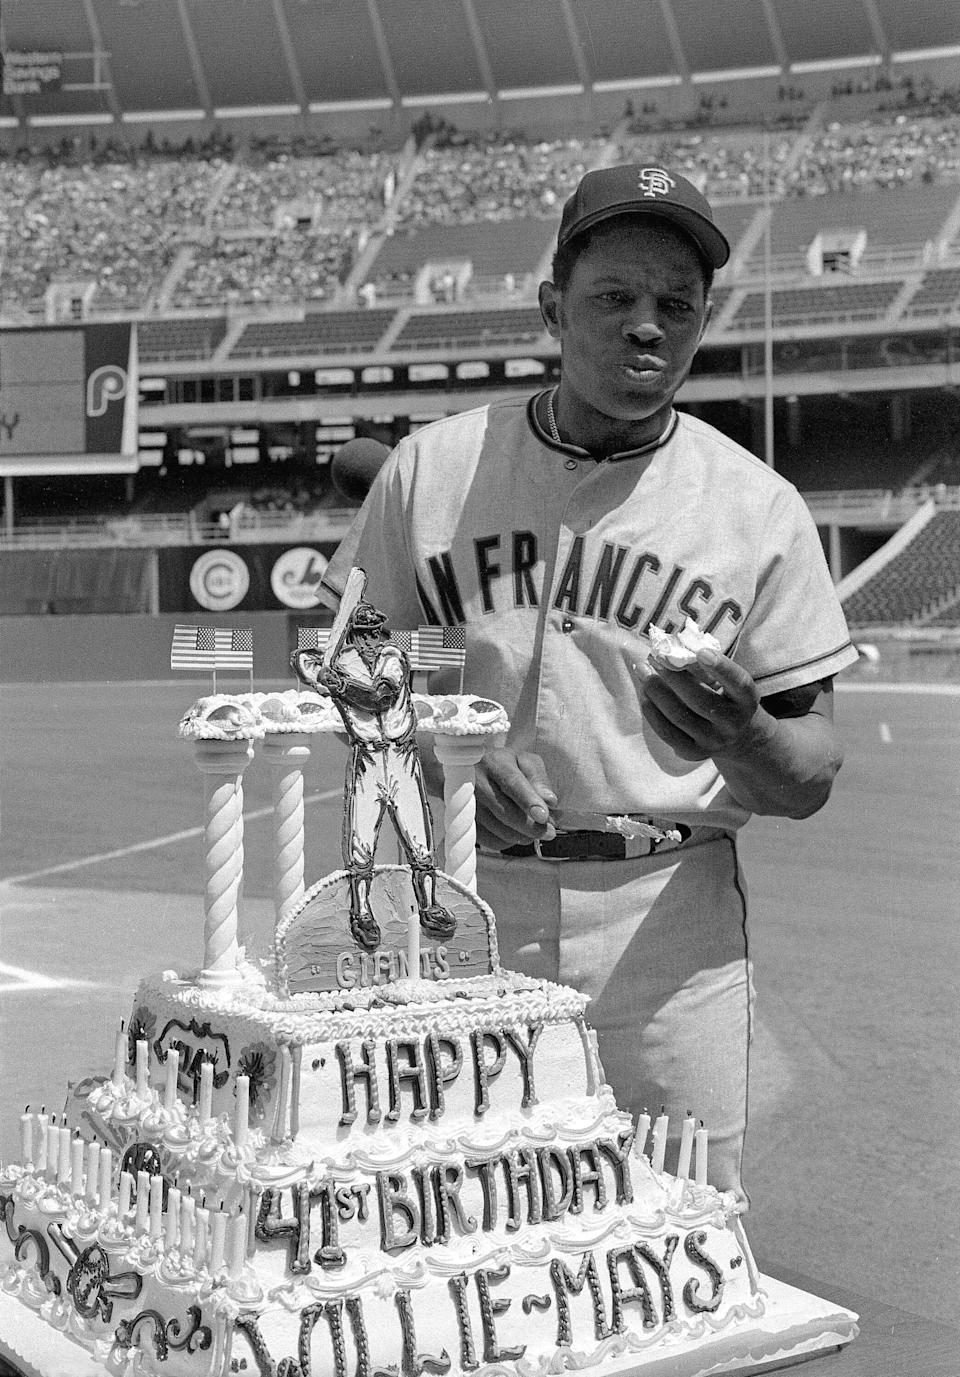 Mays celebrates his 41st birthday in with a cake presented by the Phillies in 1972.